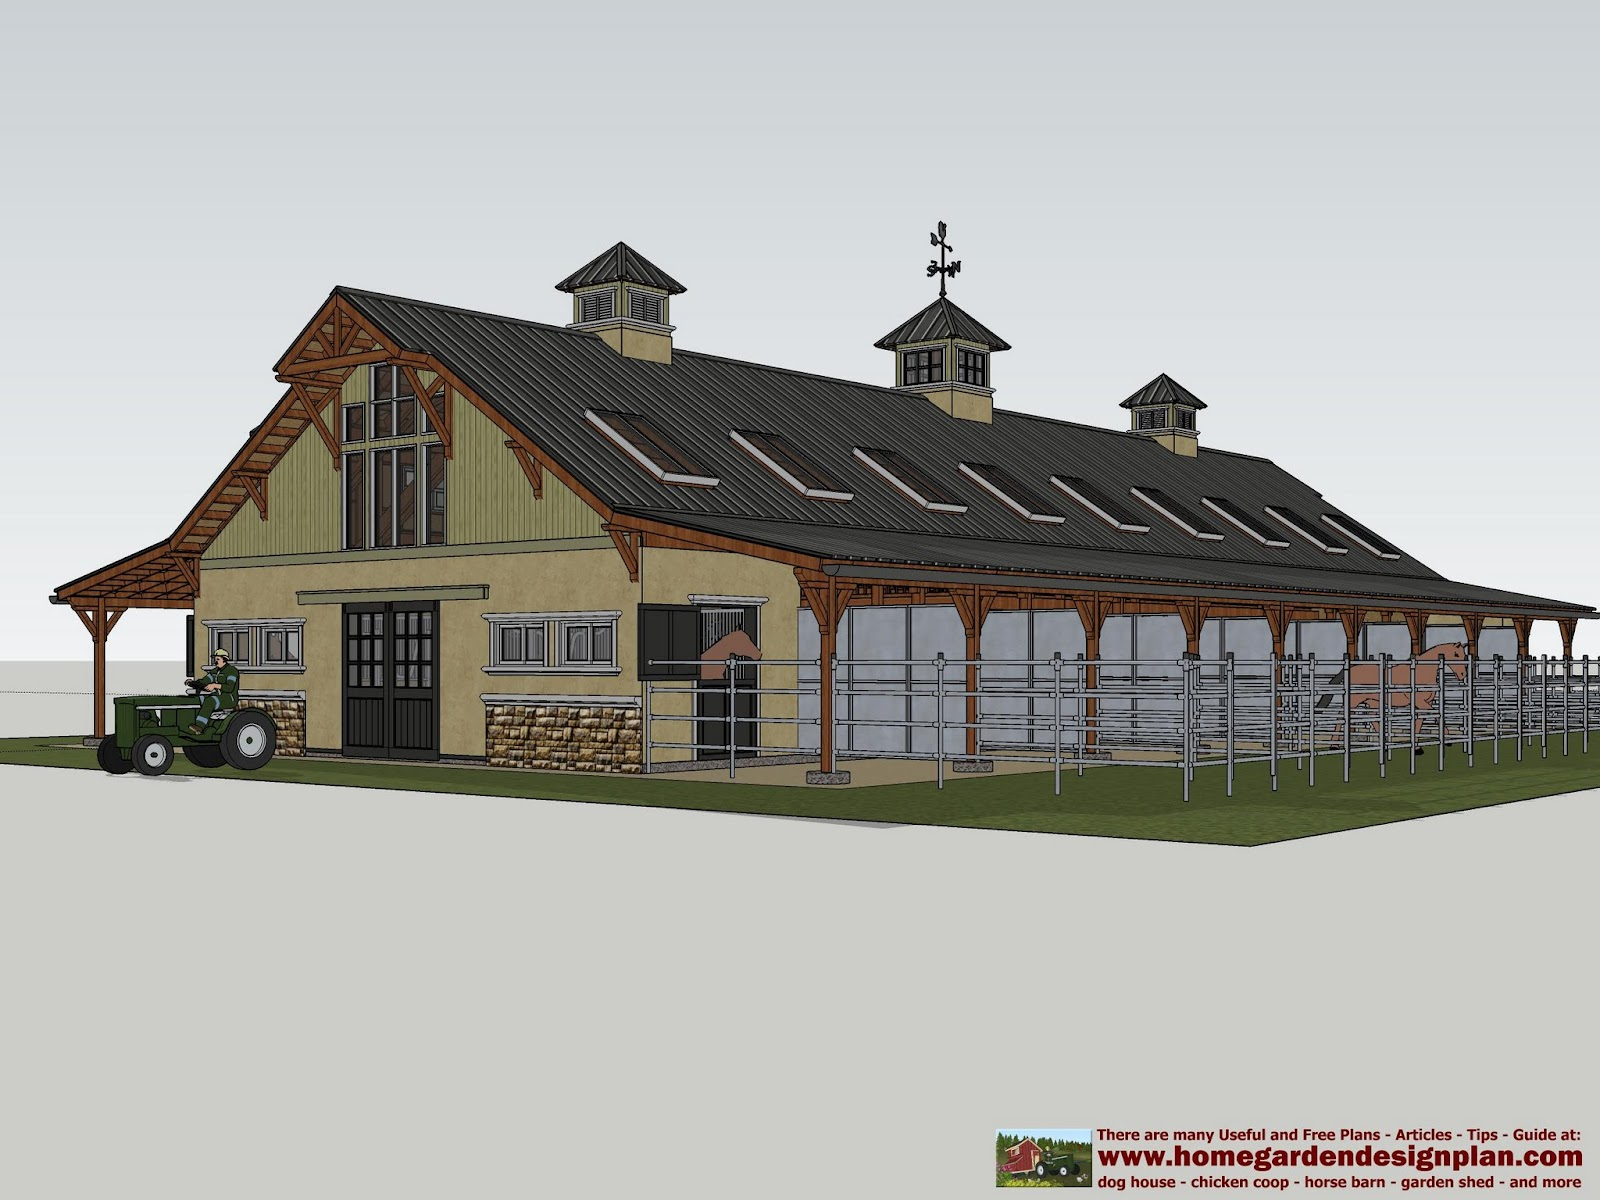 Mina hb100 horse barn plans horse barn design for Barn designs for horses